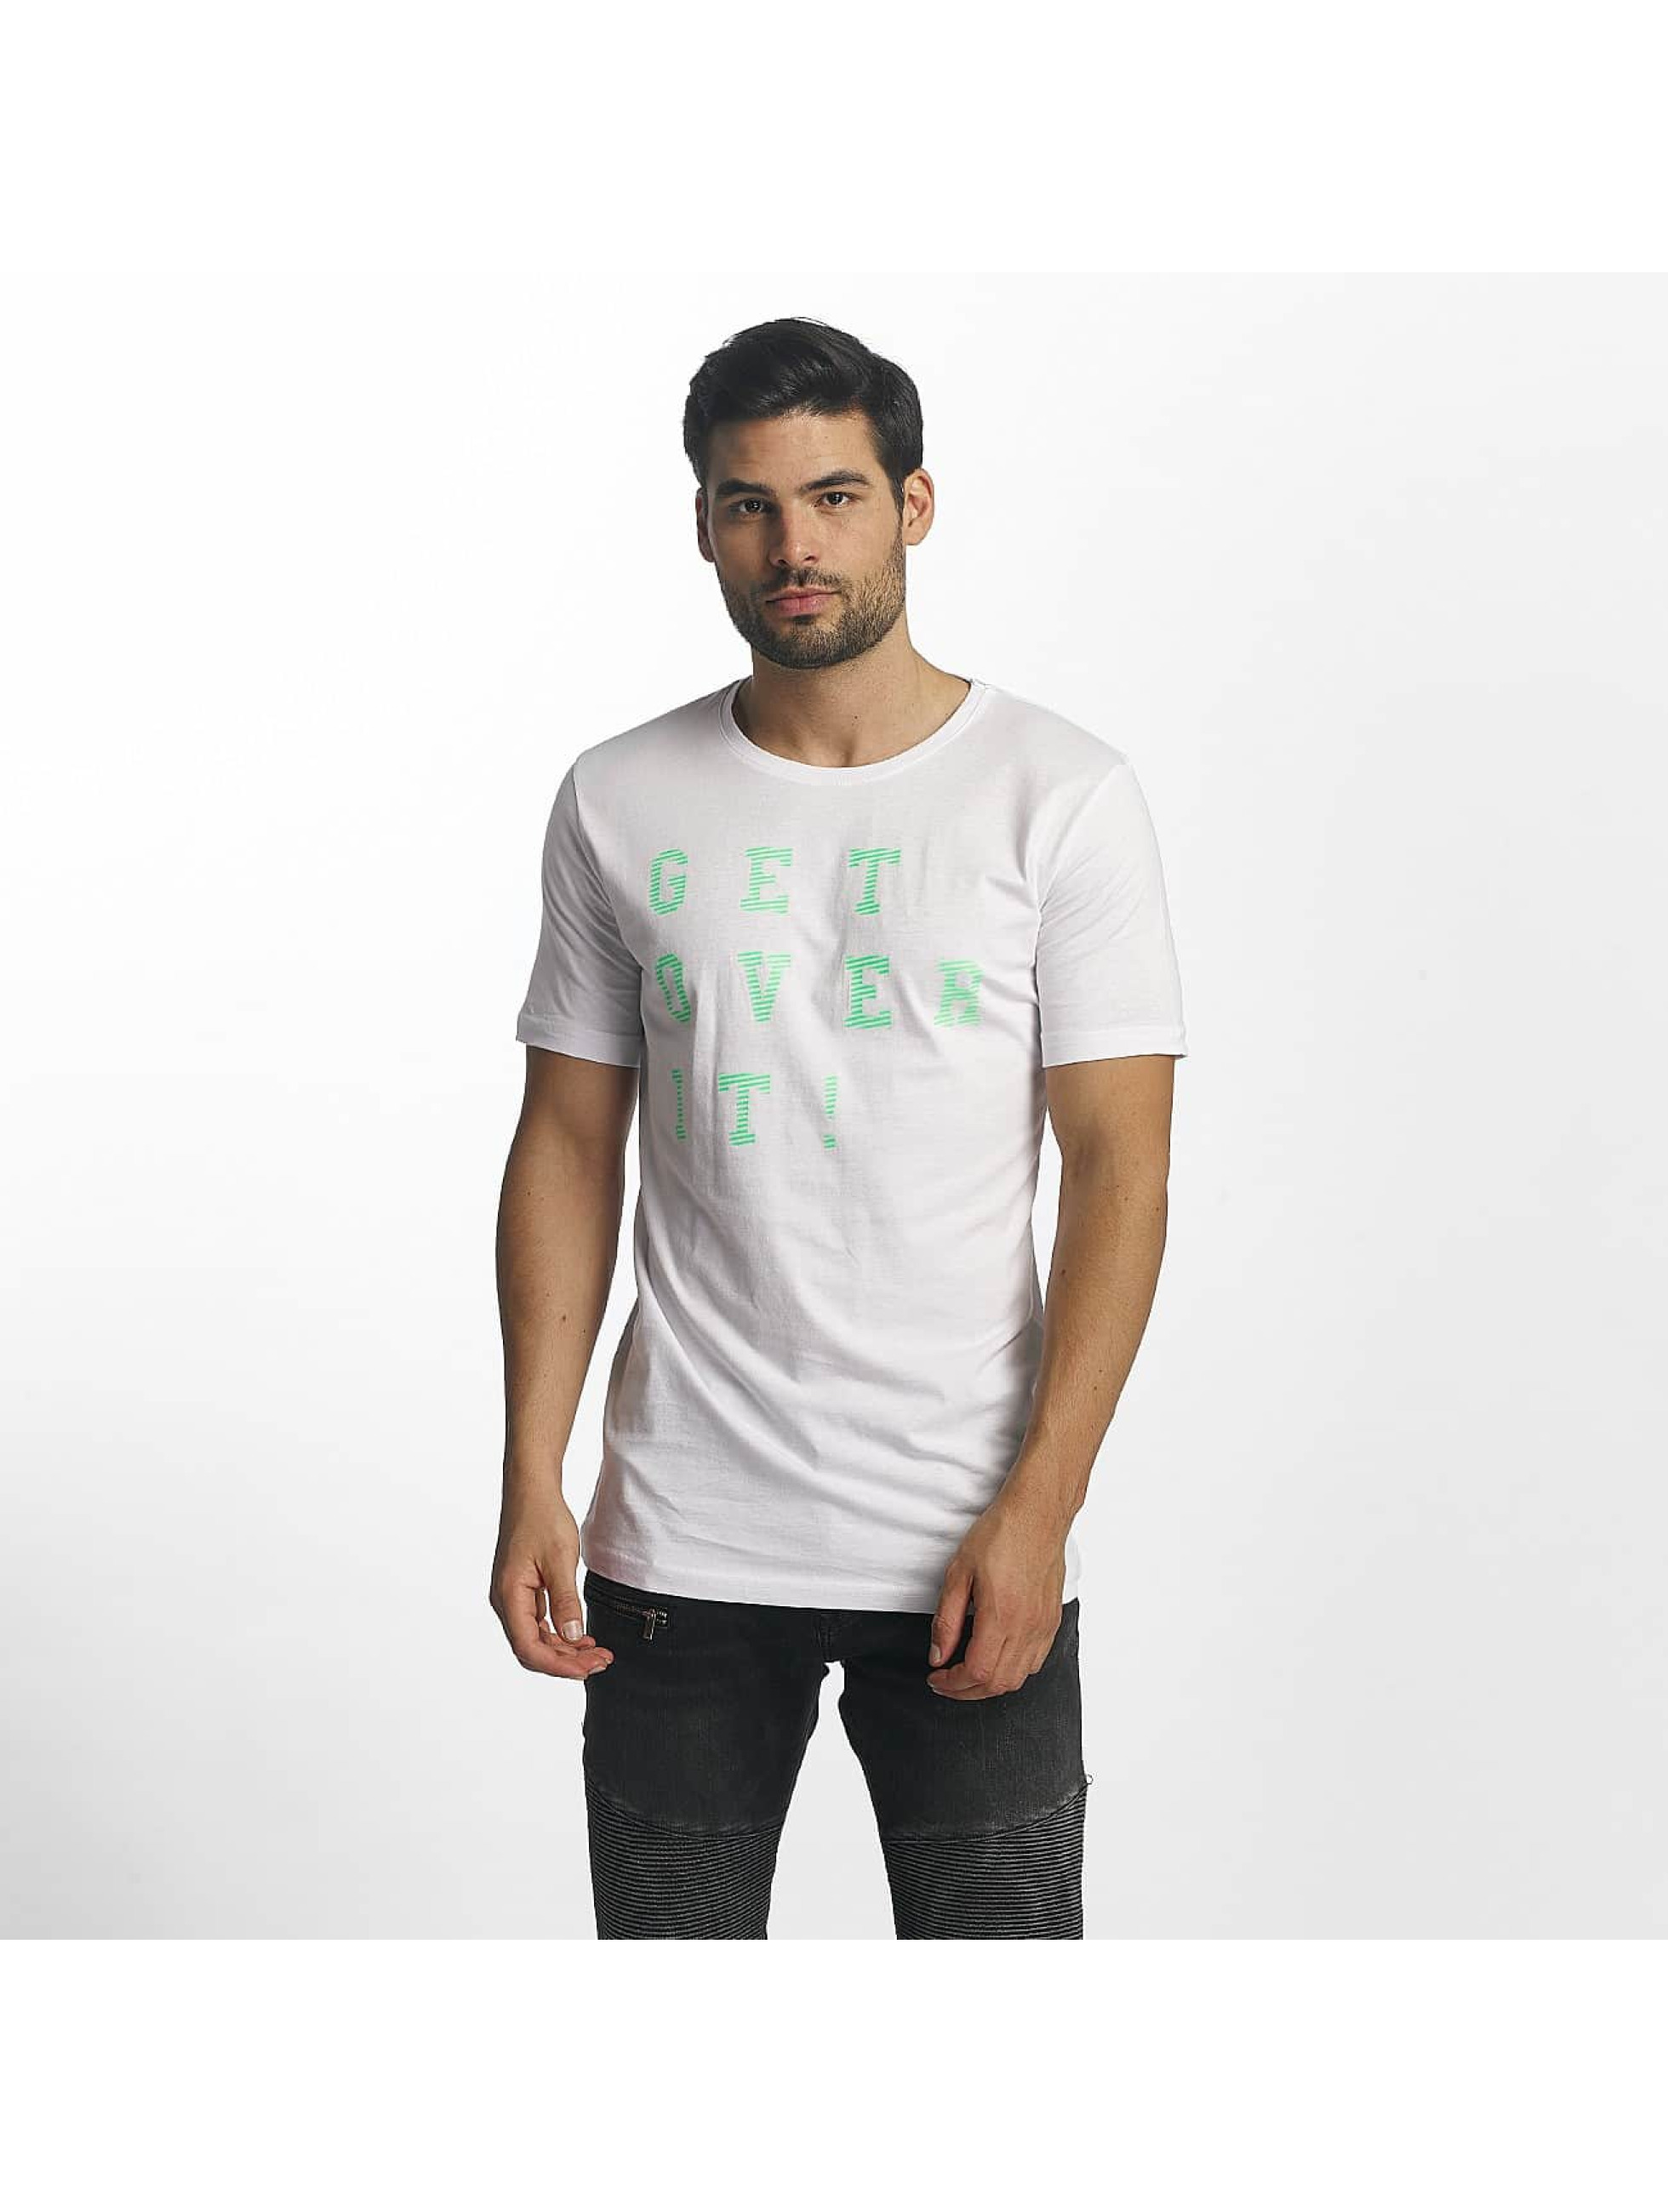 Paris Premium Männer T-Shirt Get Over It in weiß